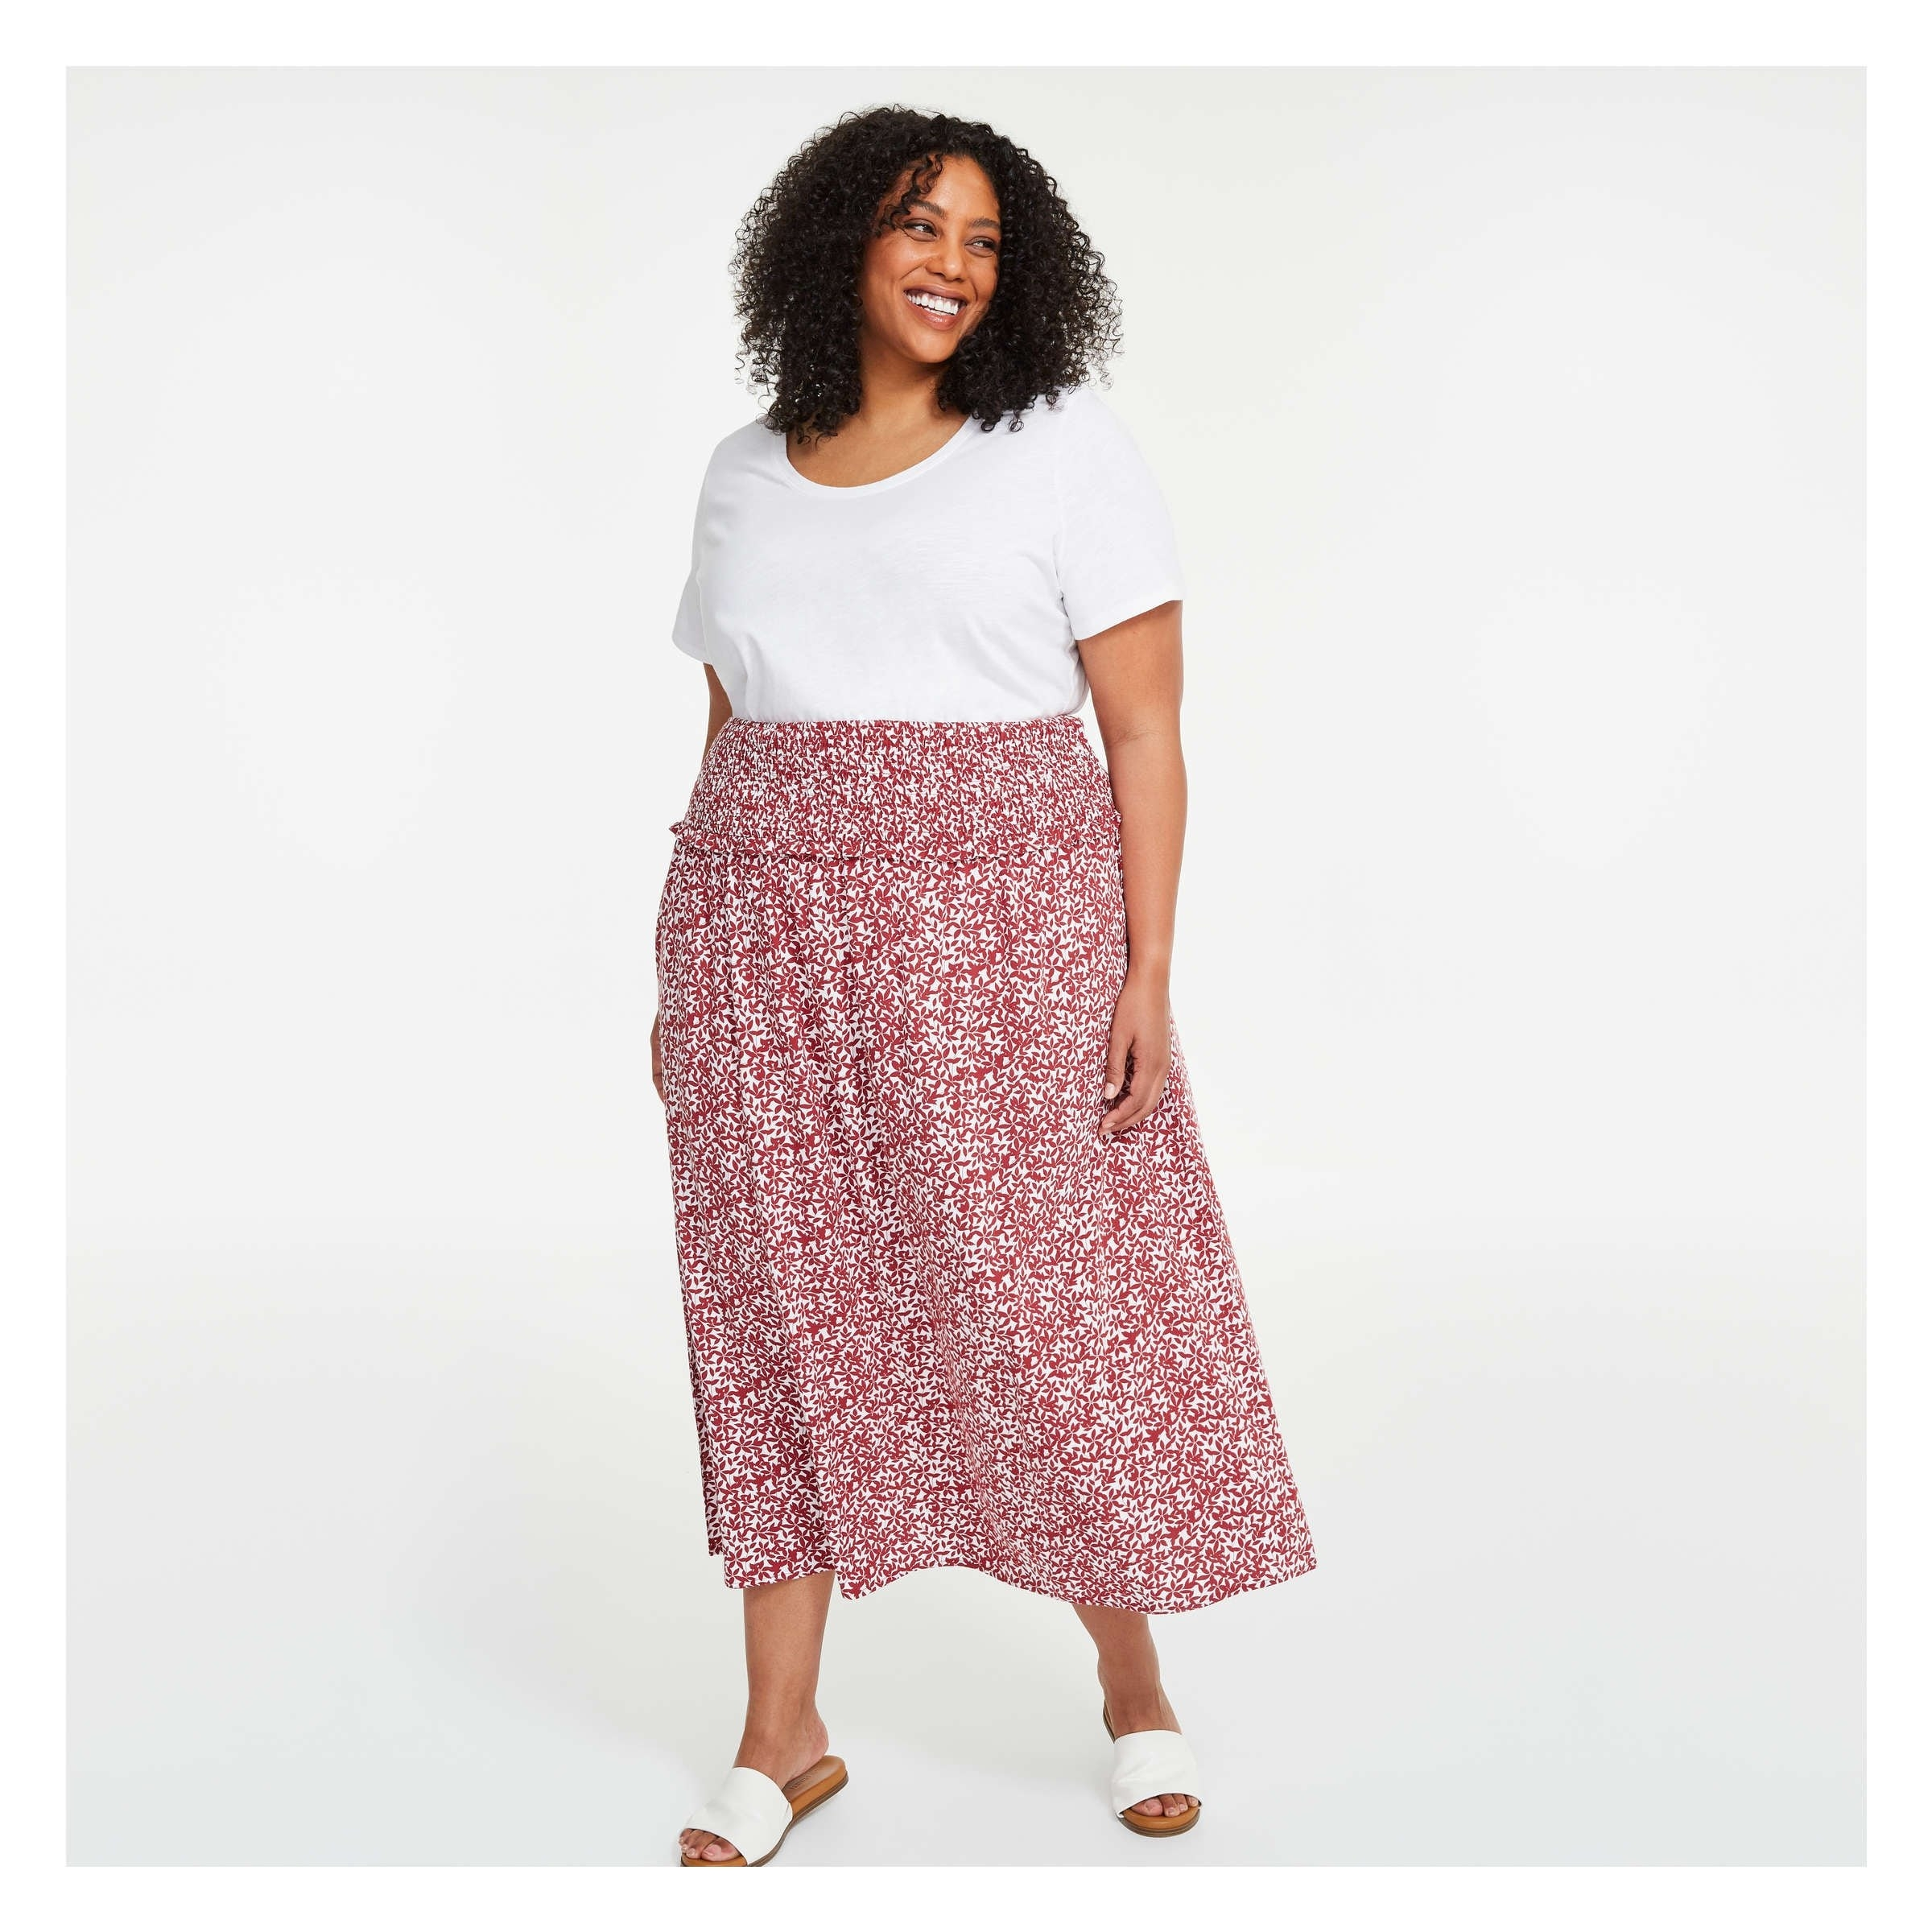 a person wearing a long floral skirt